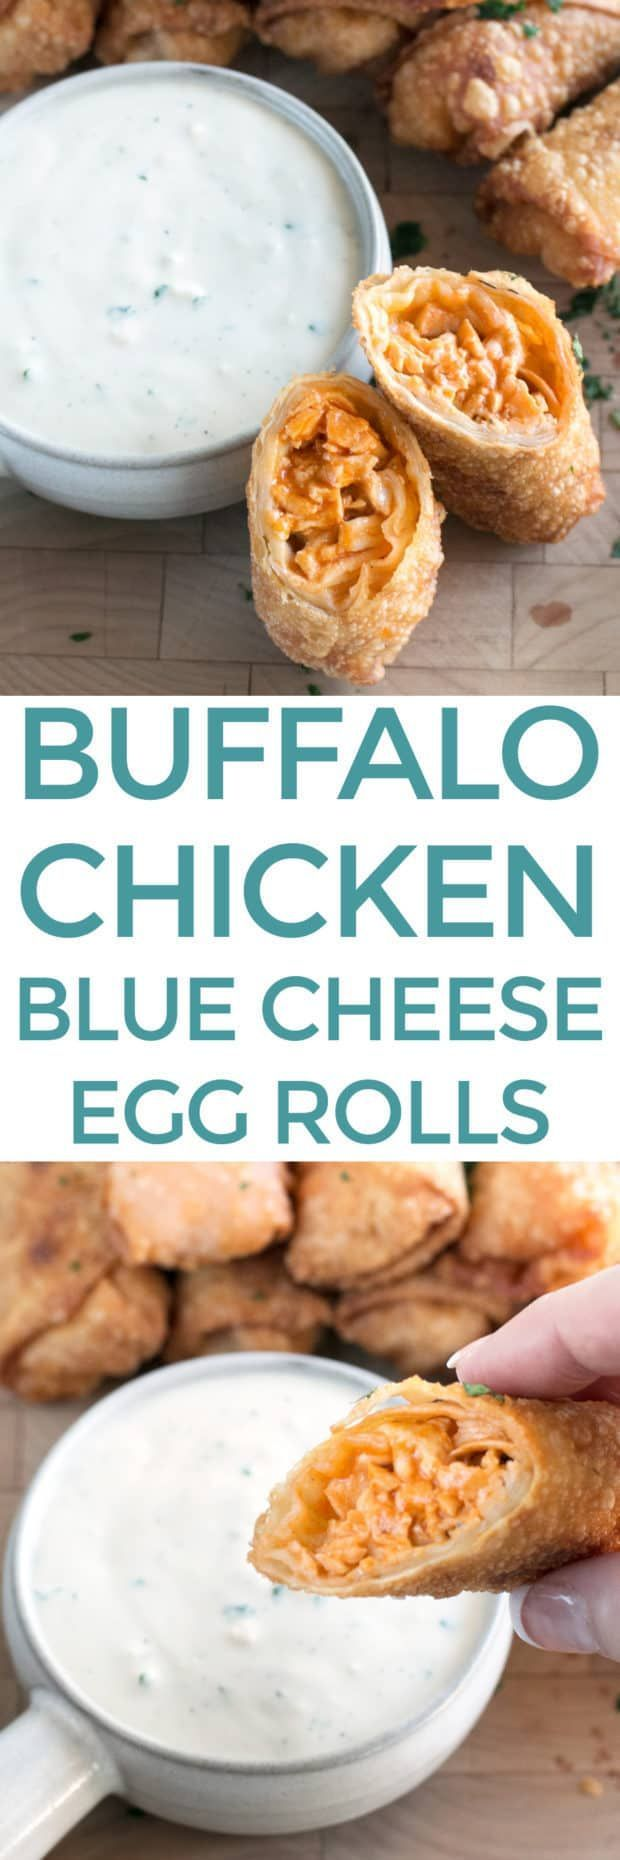 Blue Cheese Buffalo Chicken Egg Rolls have all the flavors of your favorite buffalo chicken wings, wrapped in crispy fried egg roll wrappers. The spicy filling with homemade buffalo sauce is sure to satisfy all the heat-seekers in your life, with a cooling blue cheese dipping sauce to balance it all out. Everyone will be fighting over the last one! Blue Cheese Buffalo Chicken Egg Rolls | cakenknife.com #tailgating #appetizer #recipe